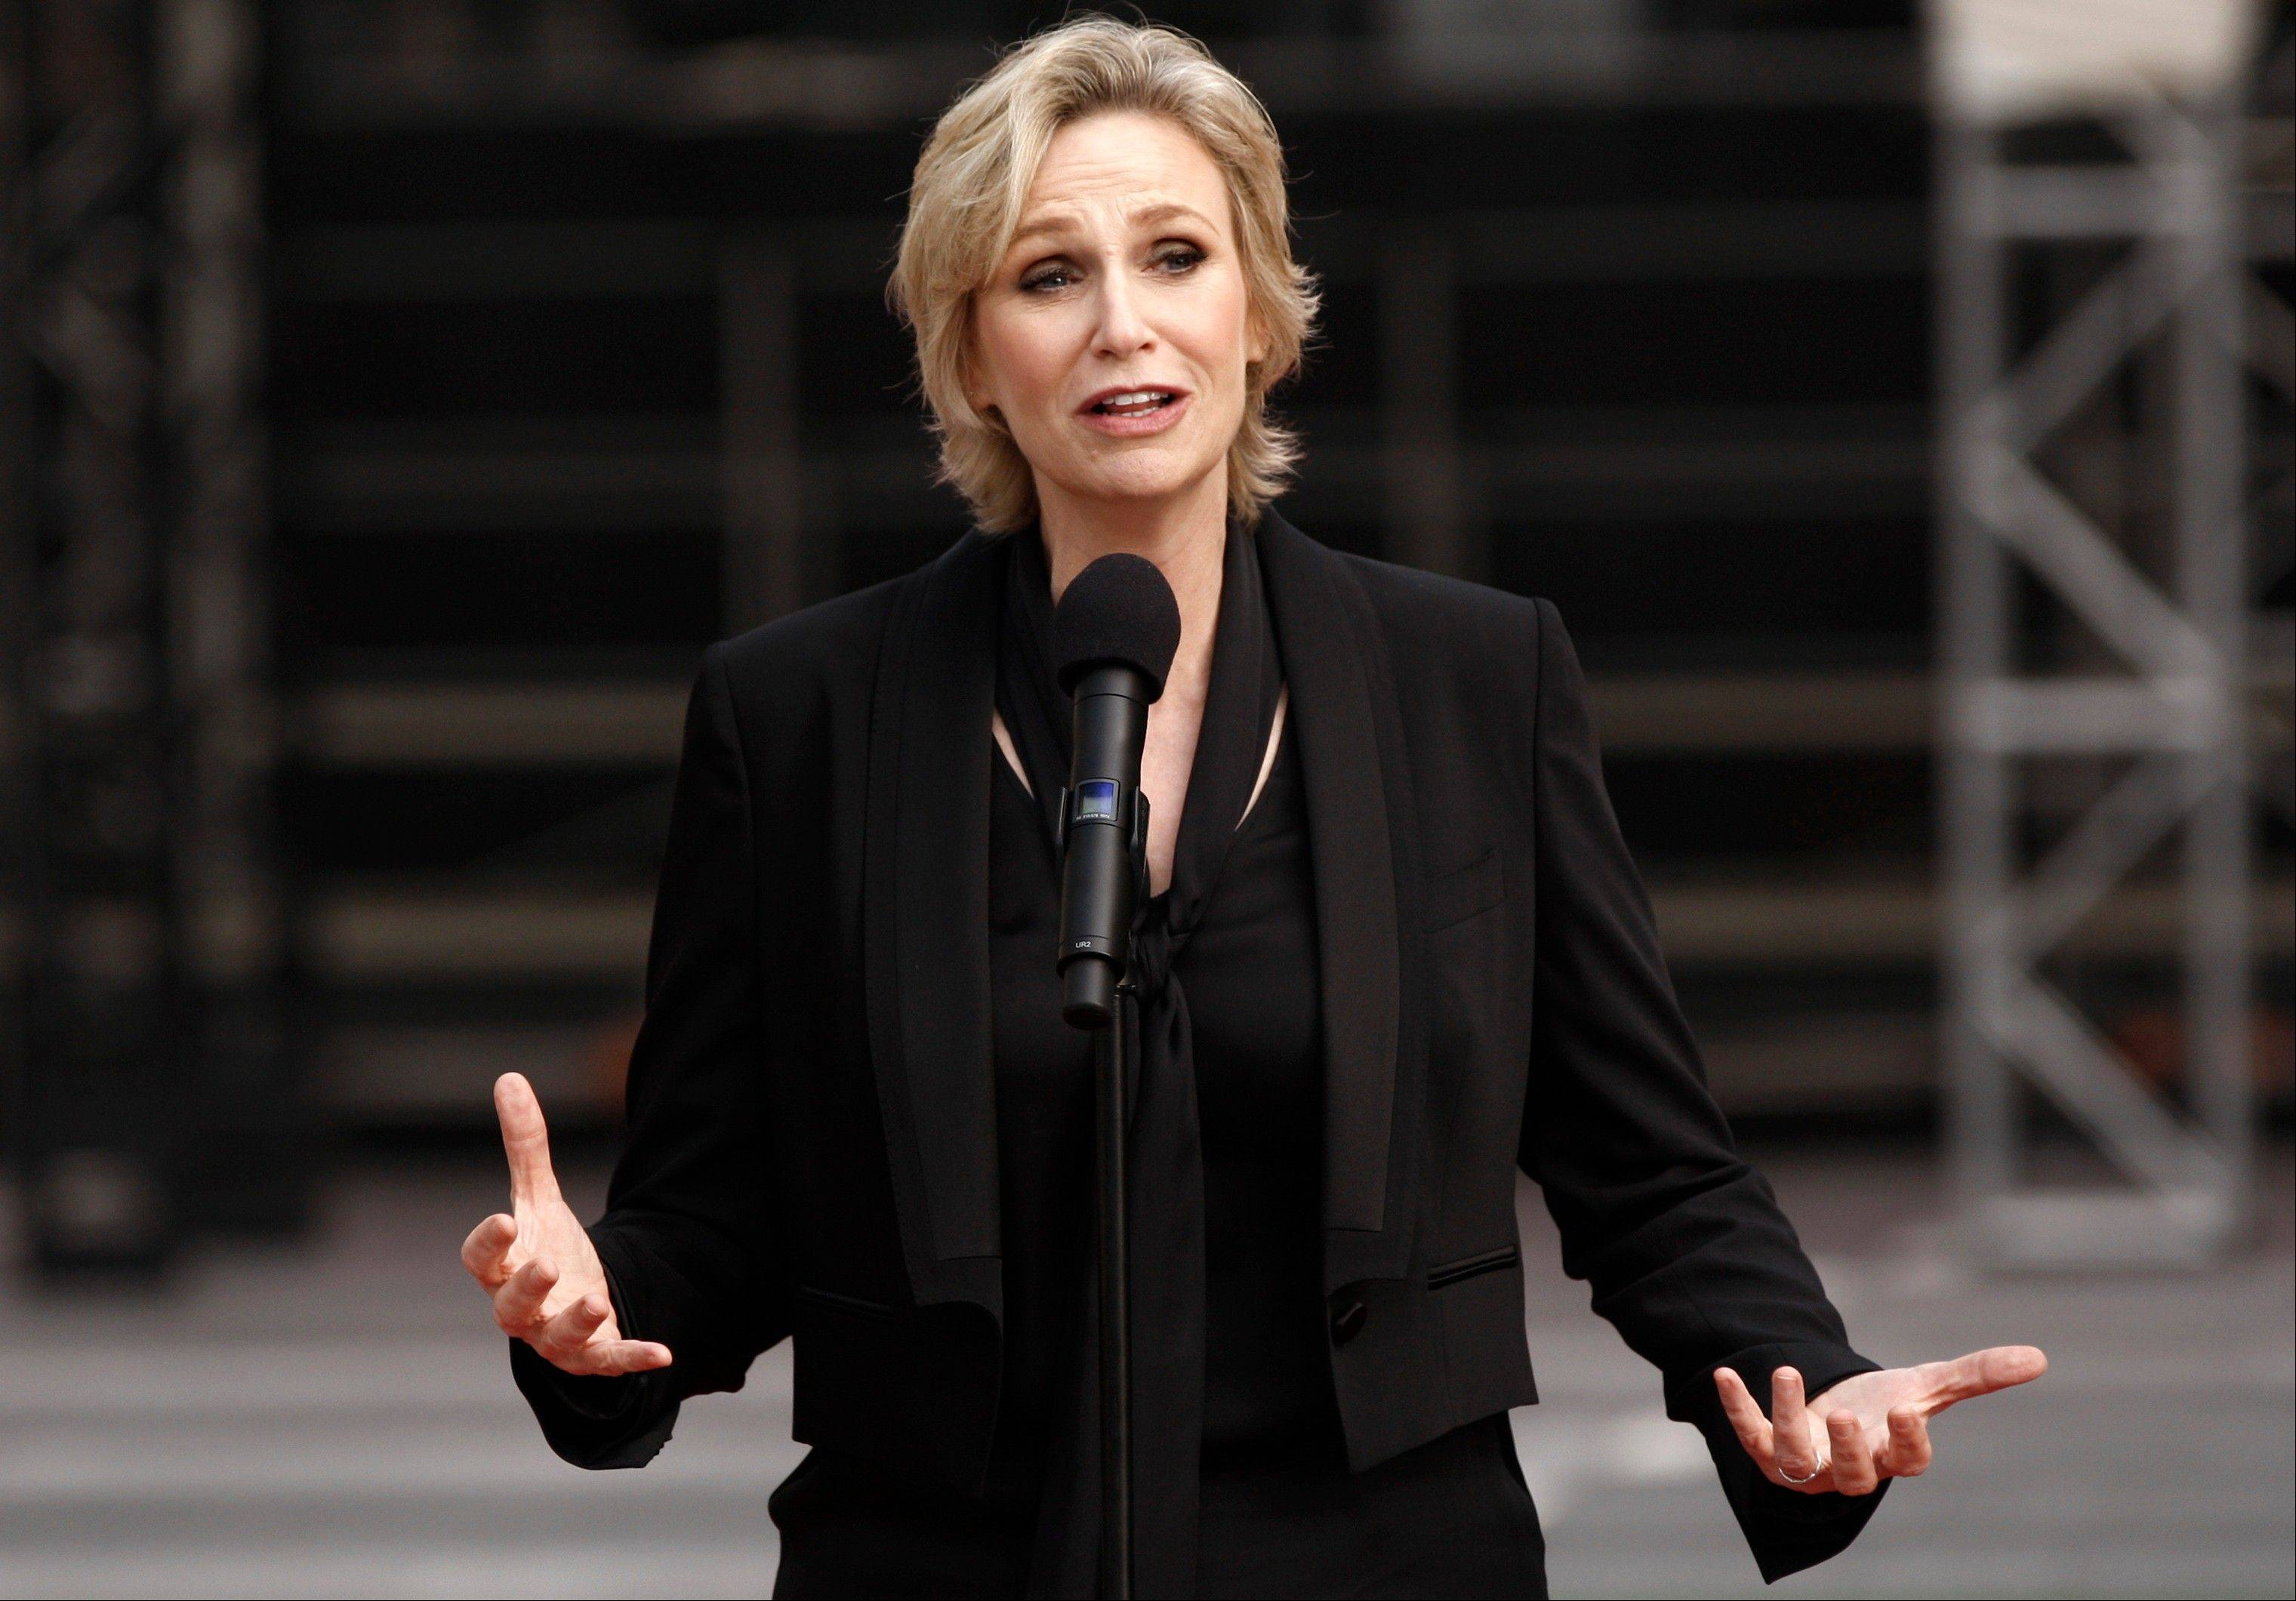 Jane Lynch speaks before the rollout of the red carpet for the 63rd Primetime Emmy Awards in Los Angeles on Wednesday. Lynch is hosting the Emmy Awards, which take place Sunday, Sept. 18, in Los Angeles.